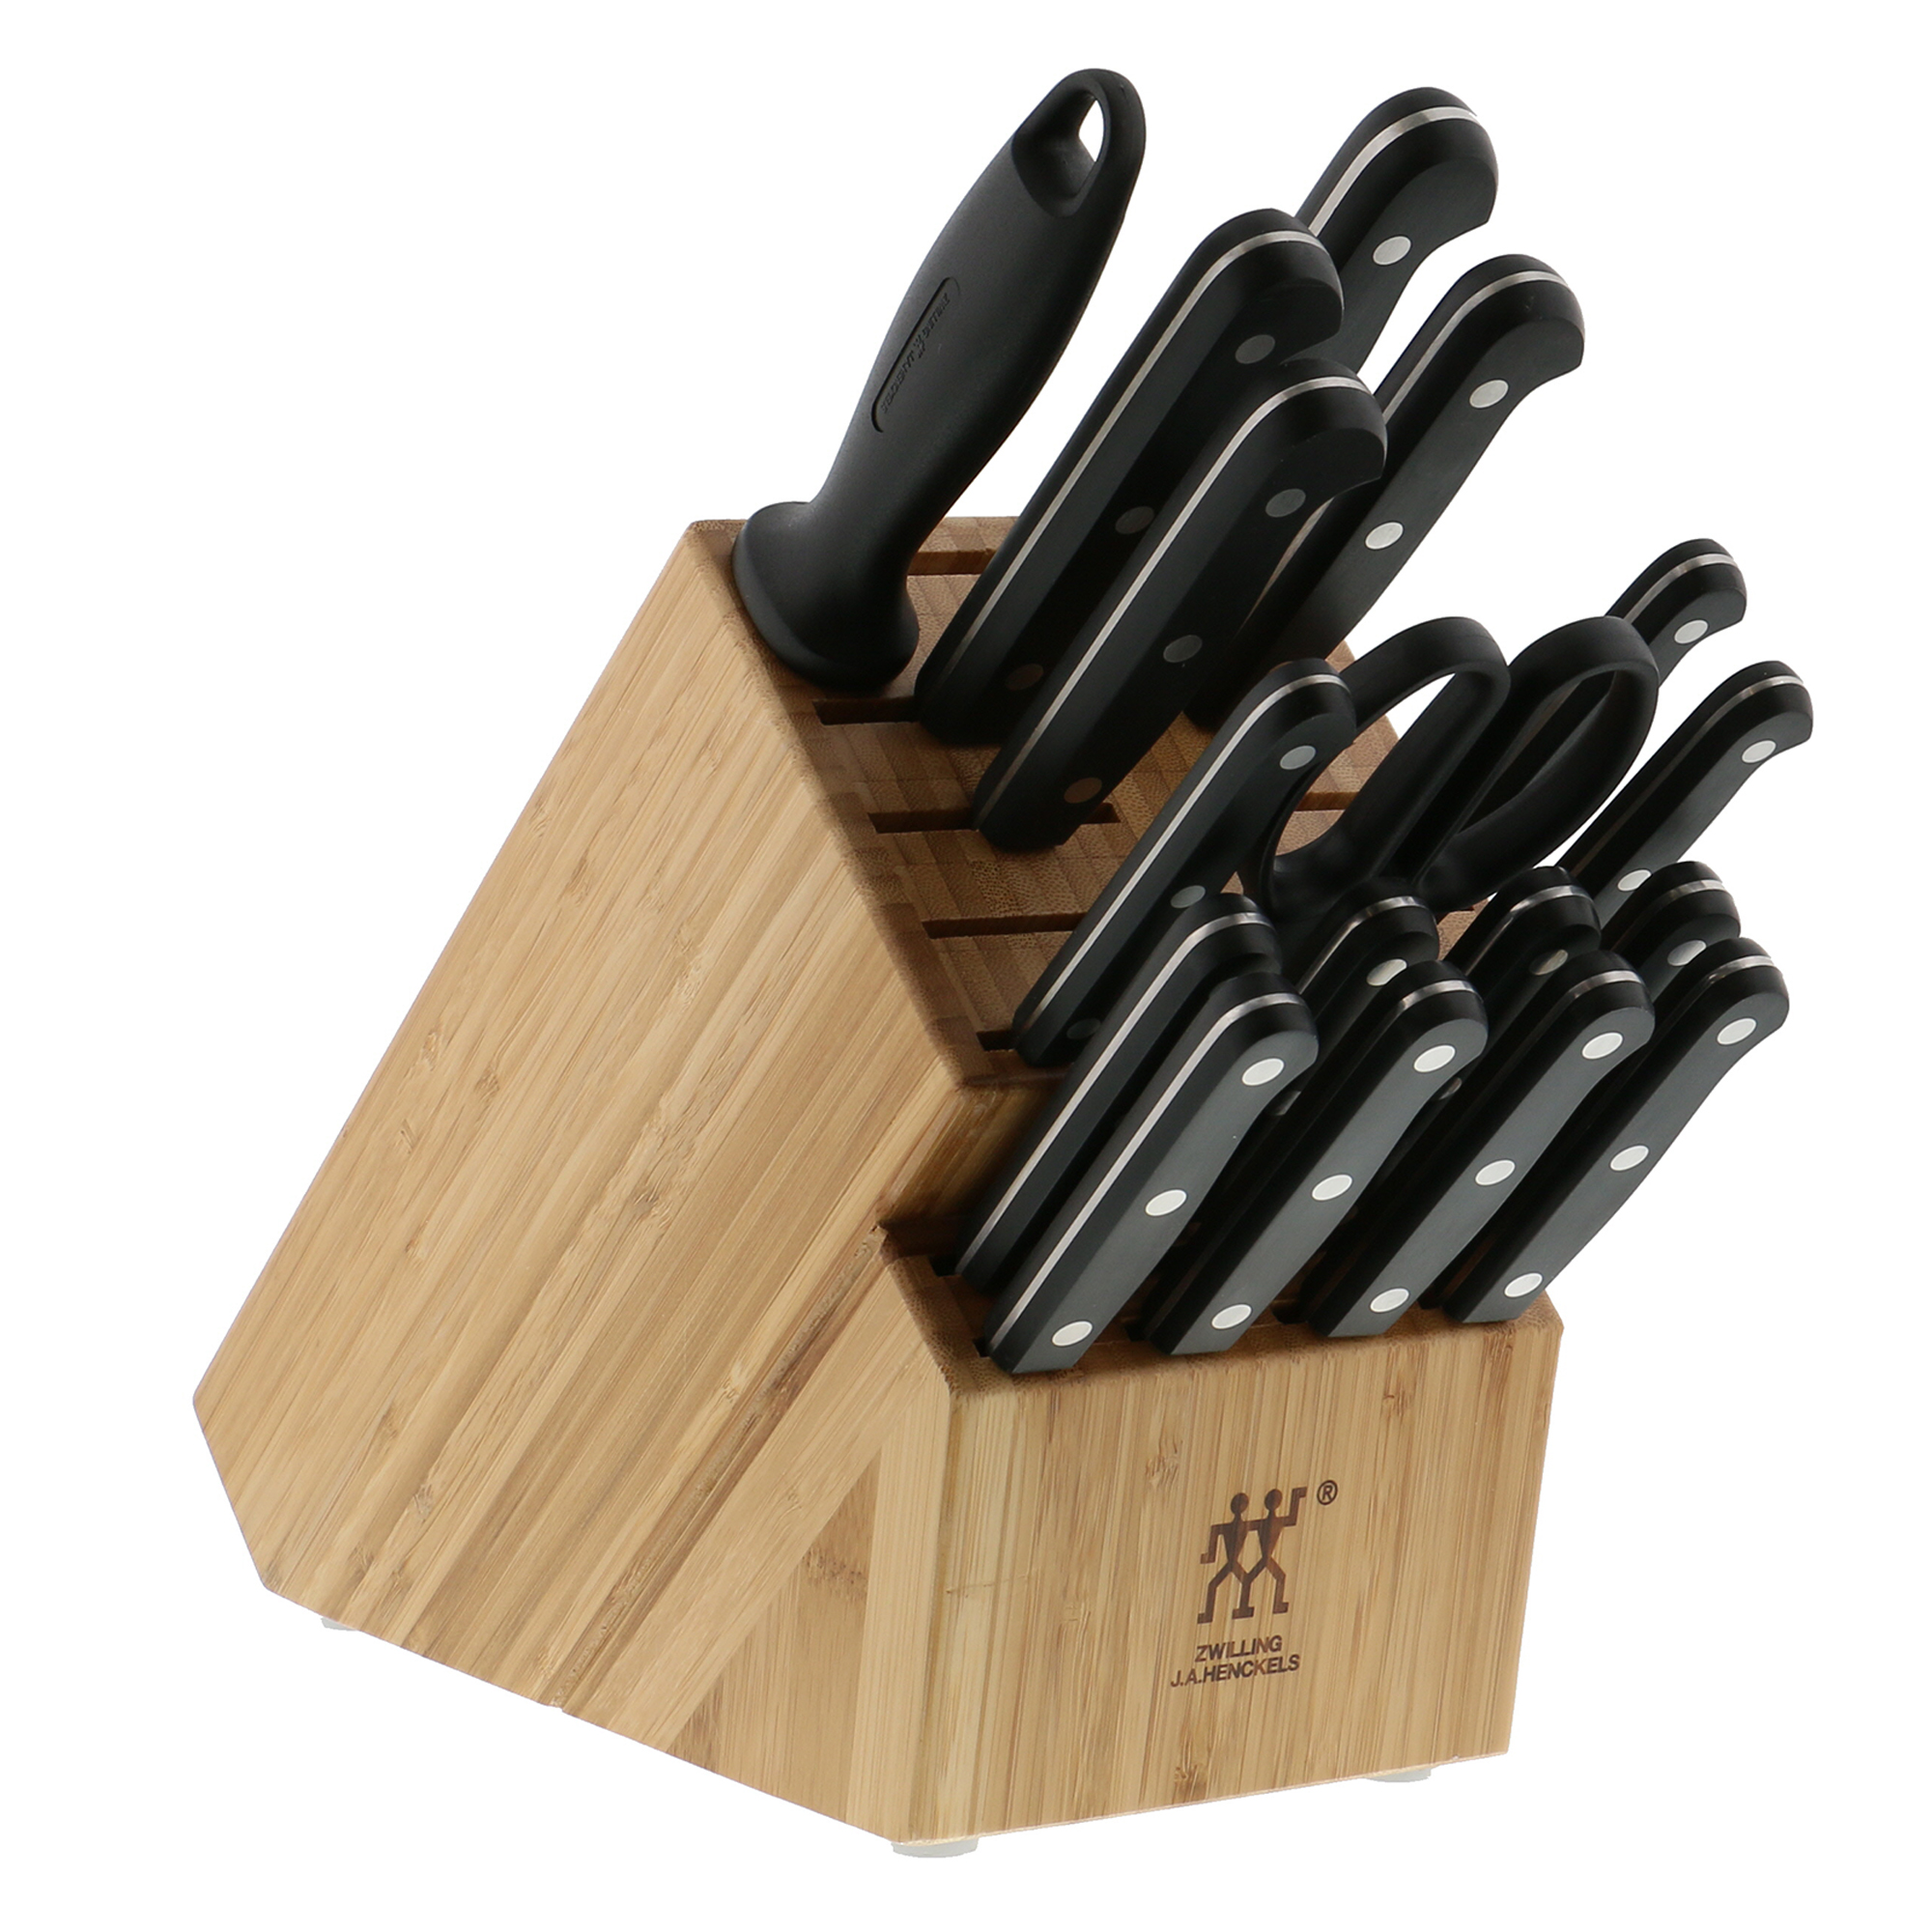 zwilling twin gourmet classic 18 pc knife block set 35886365240 ebay. Black Bedroom Furniture Sets. Home Design Ideas